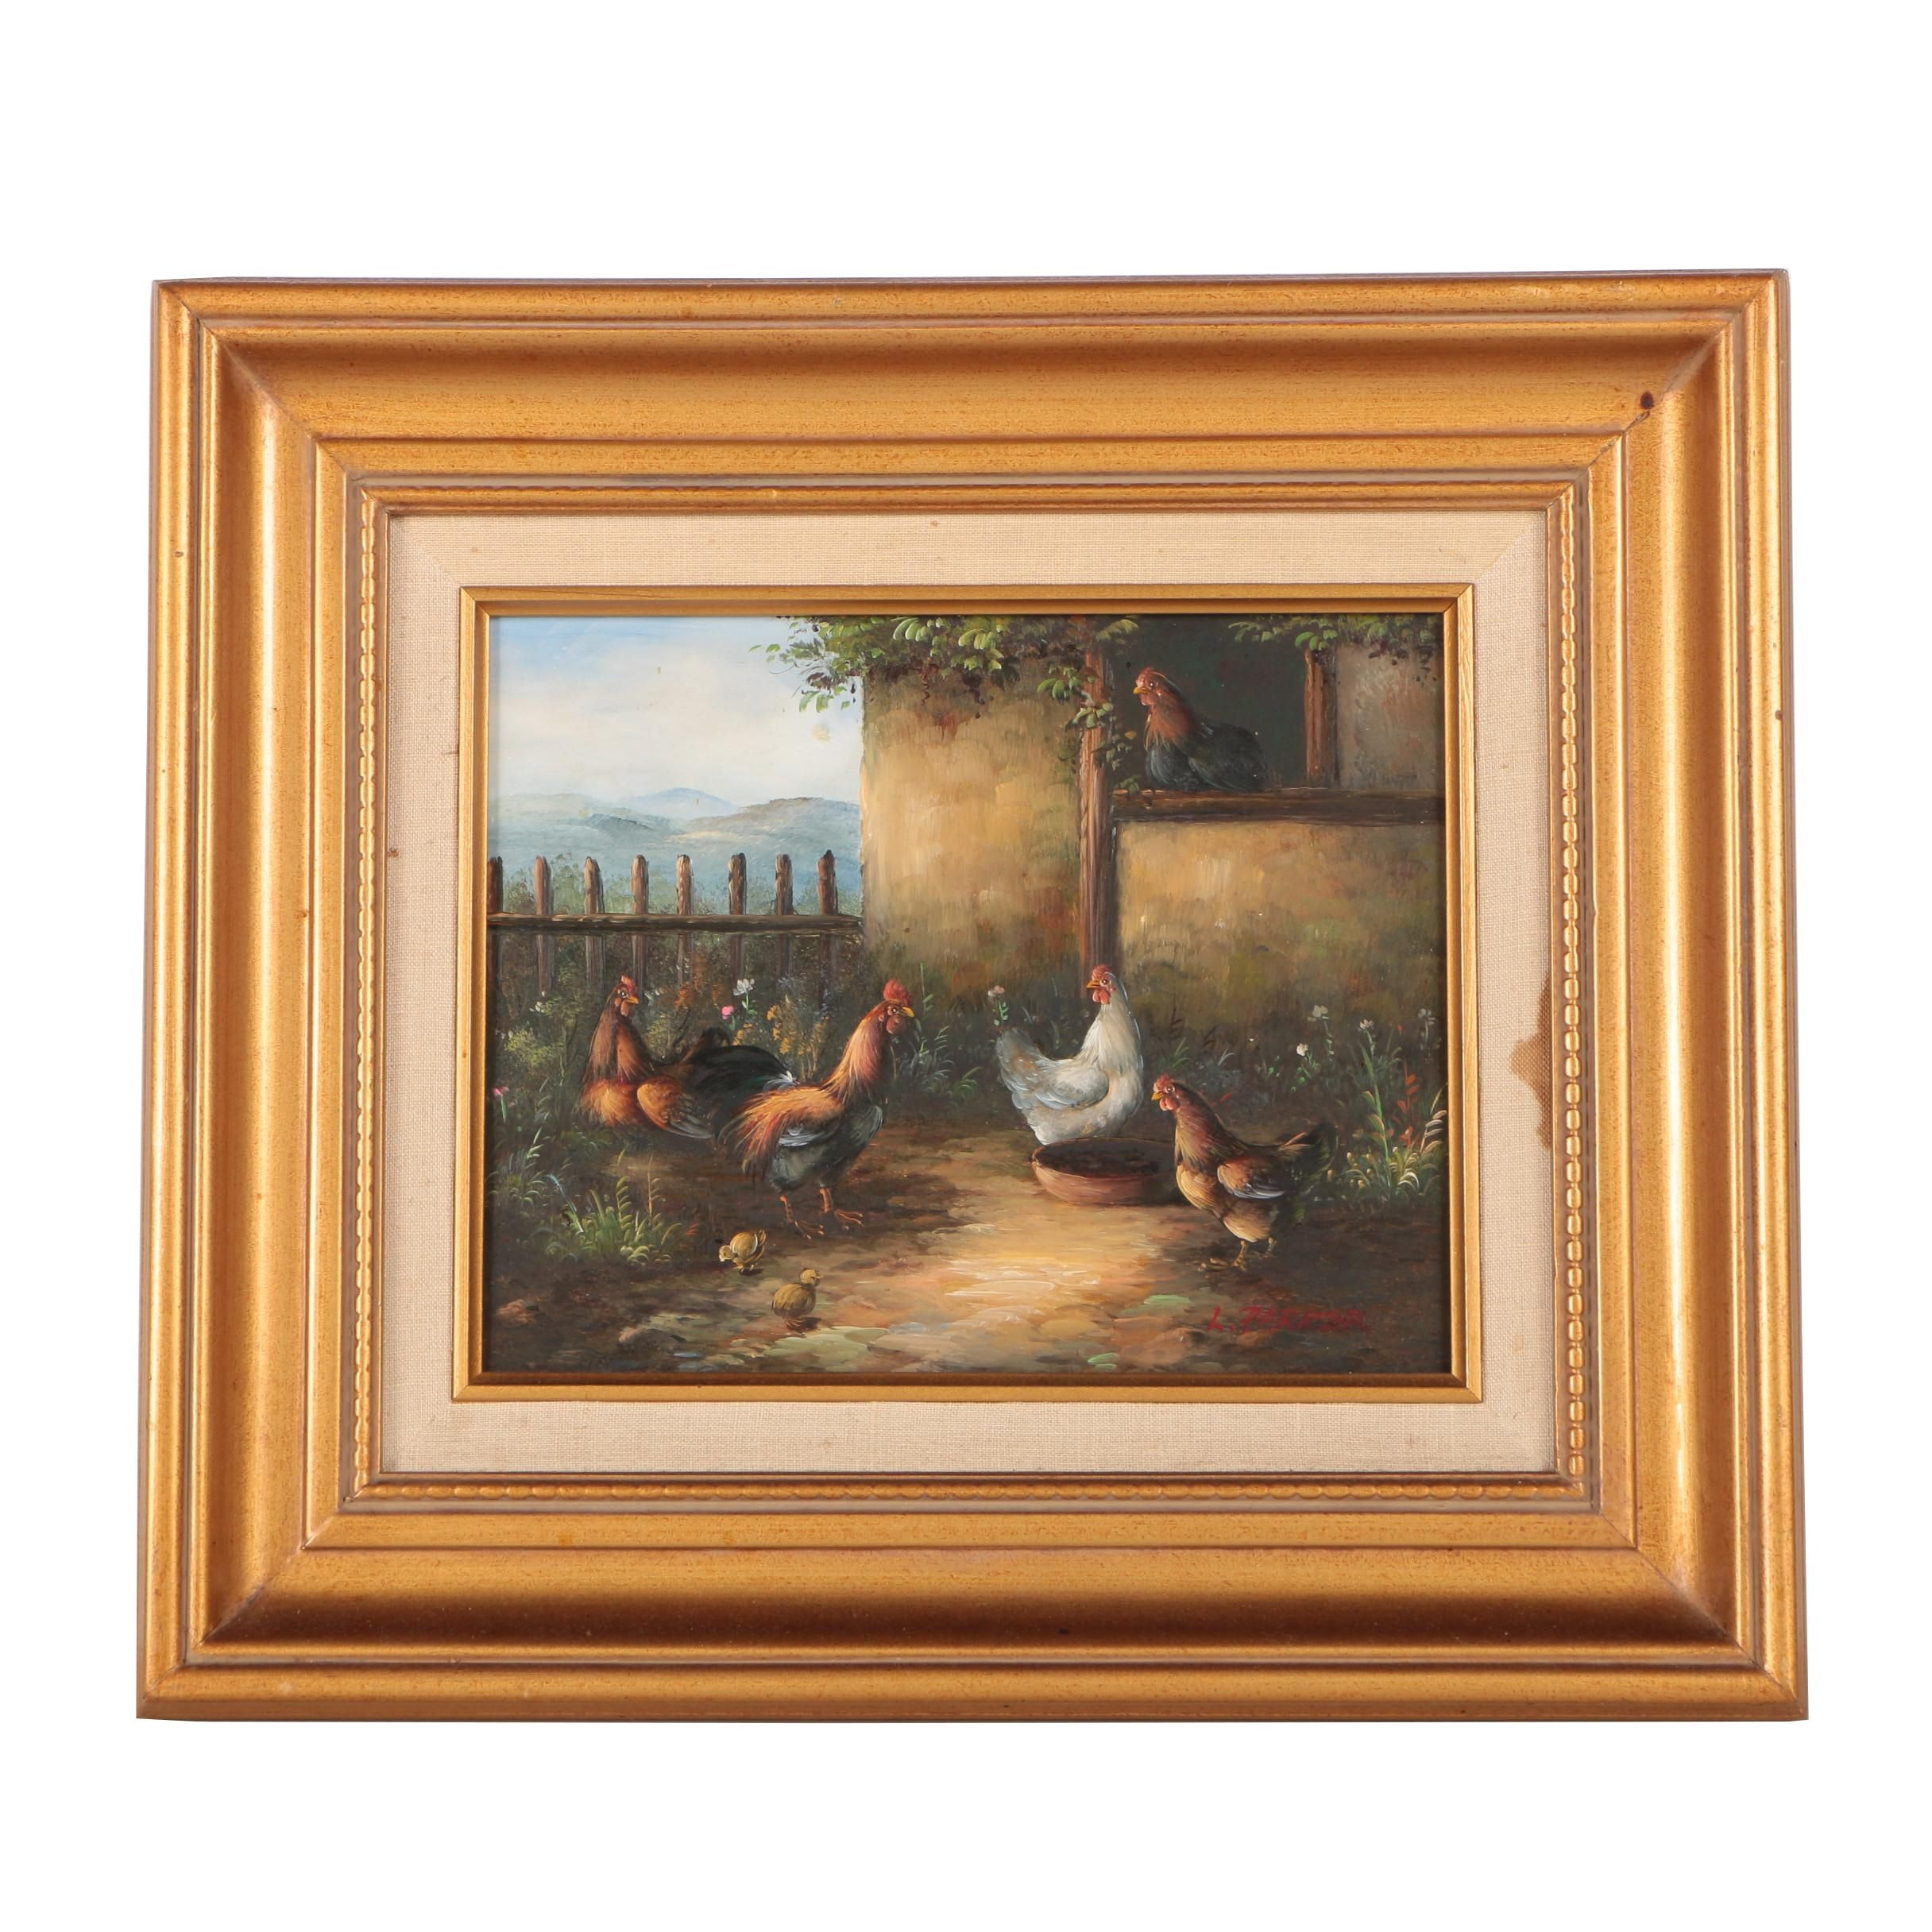 L. Parker Oil Painting of Farm Scene with Chickens